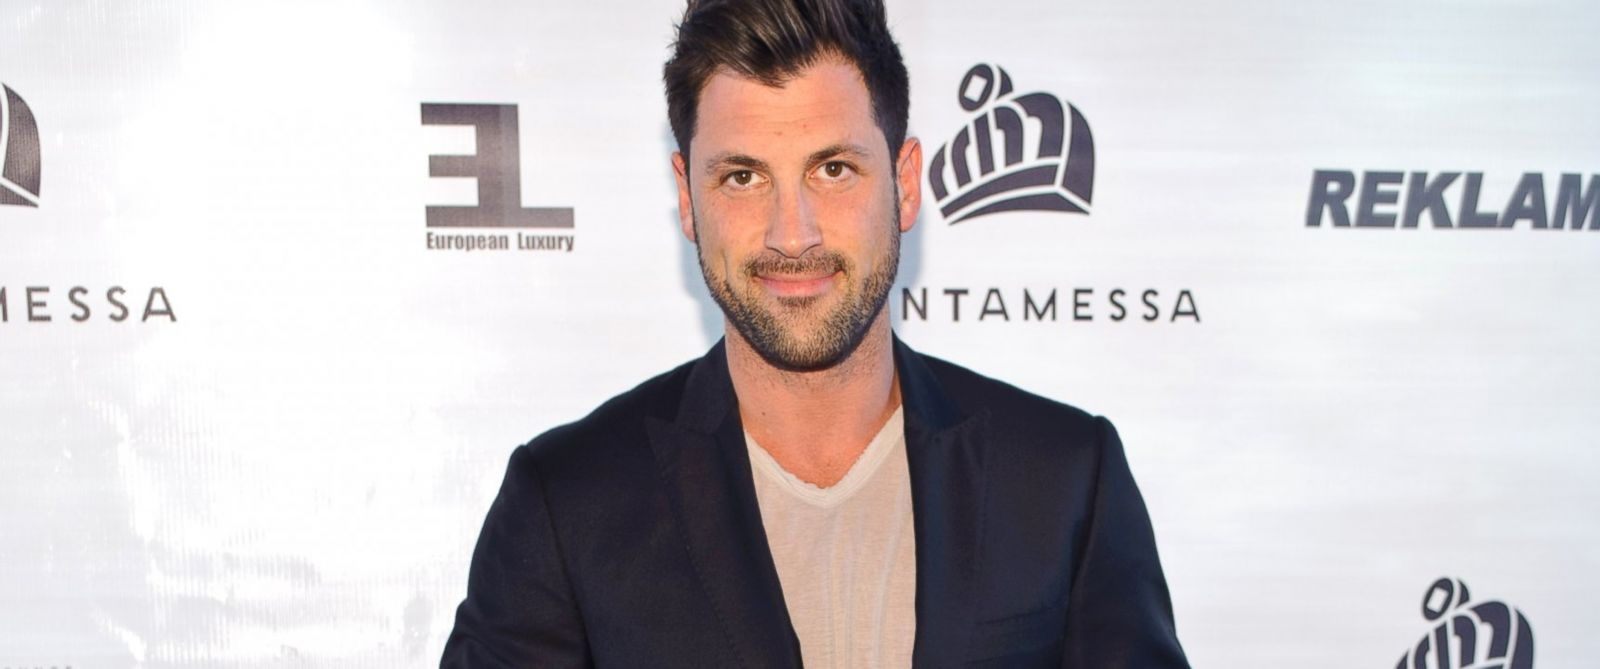 PHOTO: Maksim Chmerkovskiy attends the 2014 Cantamessa Collection Preview at Vertigo Sky Lounge, June 5, 2014, in Chicago.